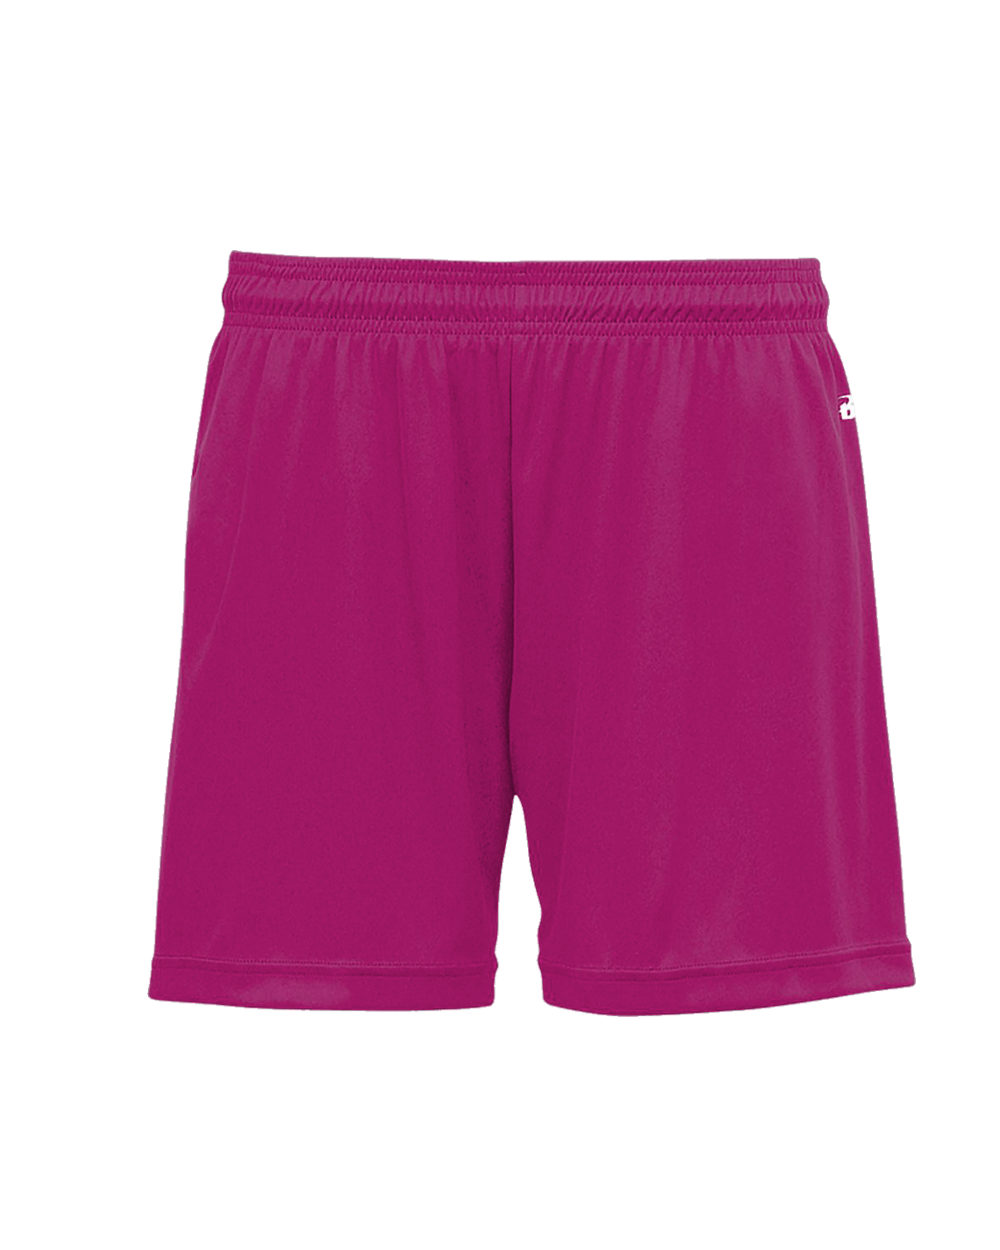 B-Core Girls' Short - Hot Pink